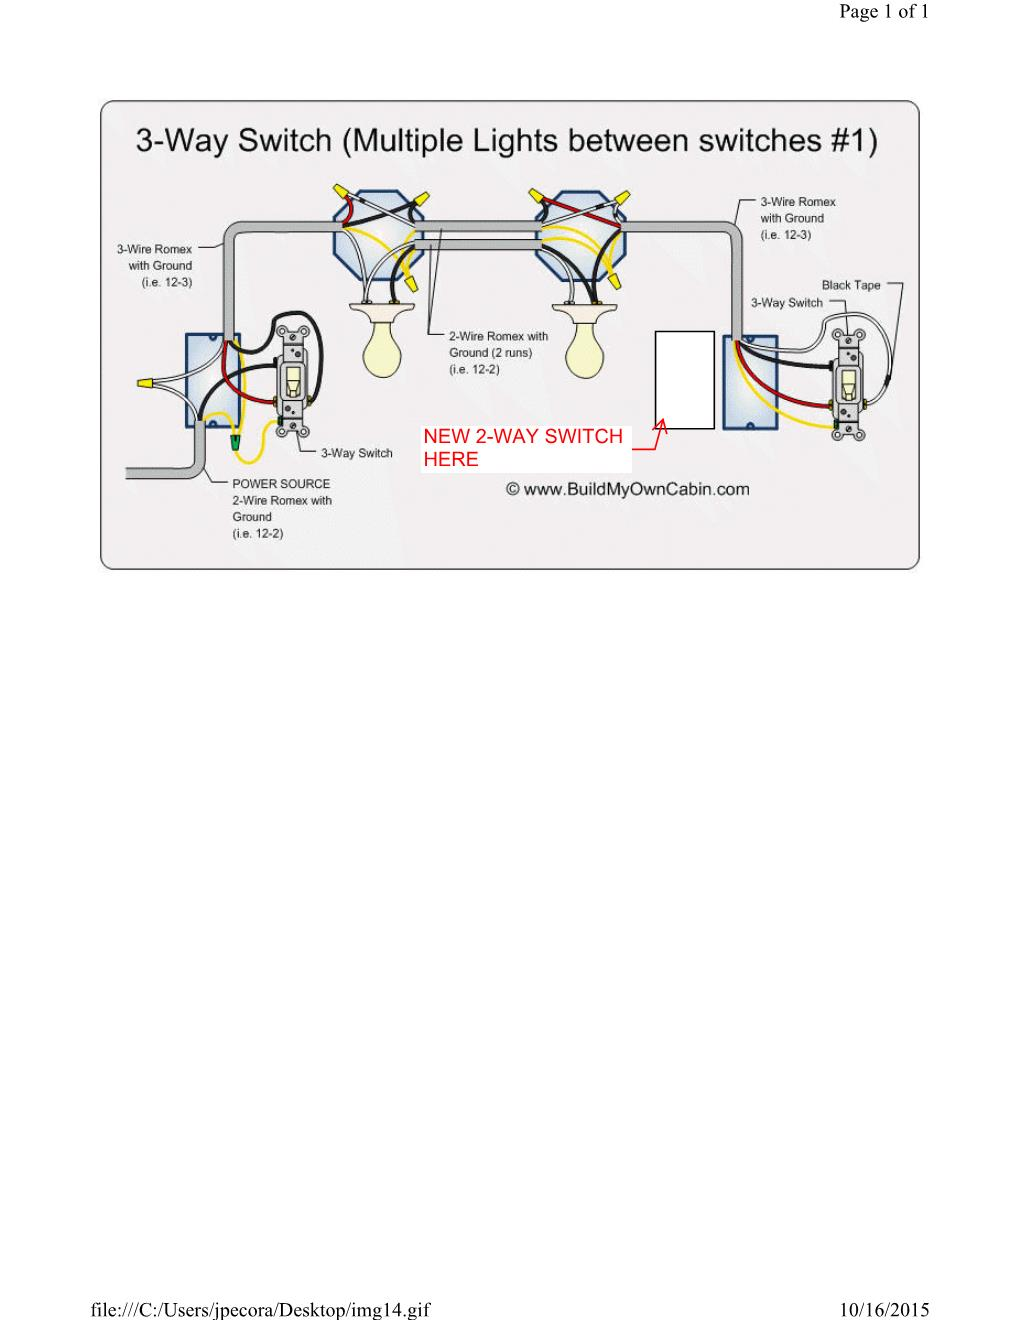 How To Wire 3 Way Switch With Multiple Lights : switch, multiple, lights, Wiring, Single, Switch, 3-way, Improvement, Stack, Exchange